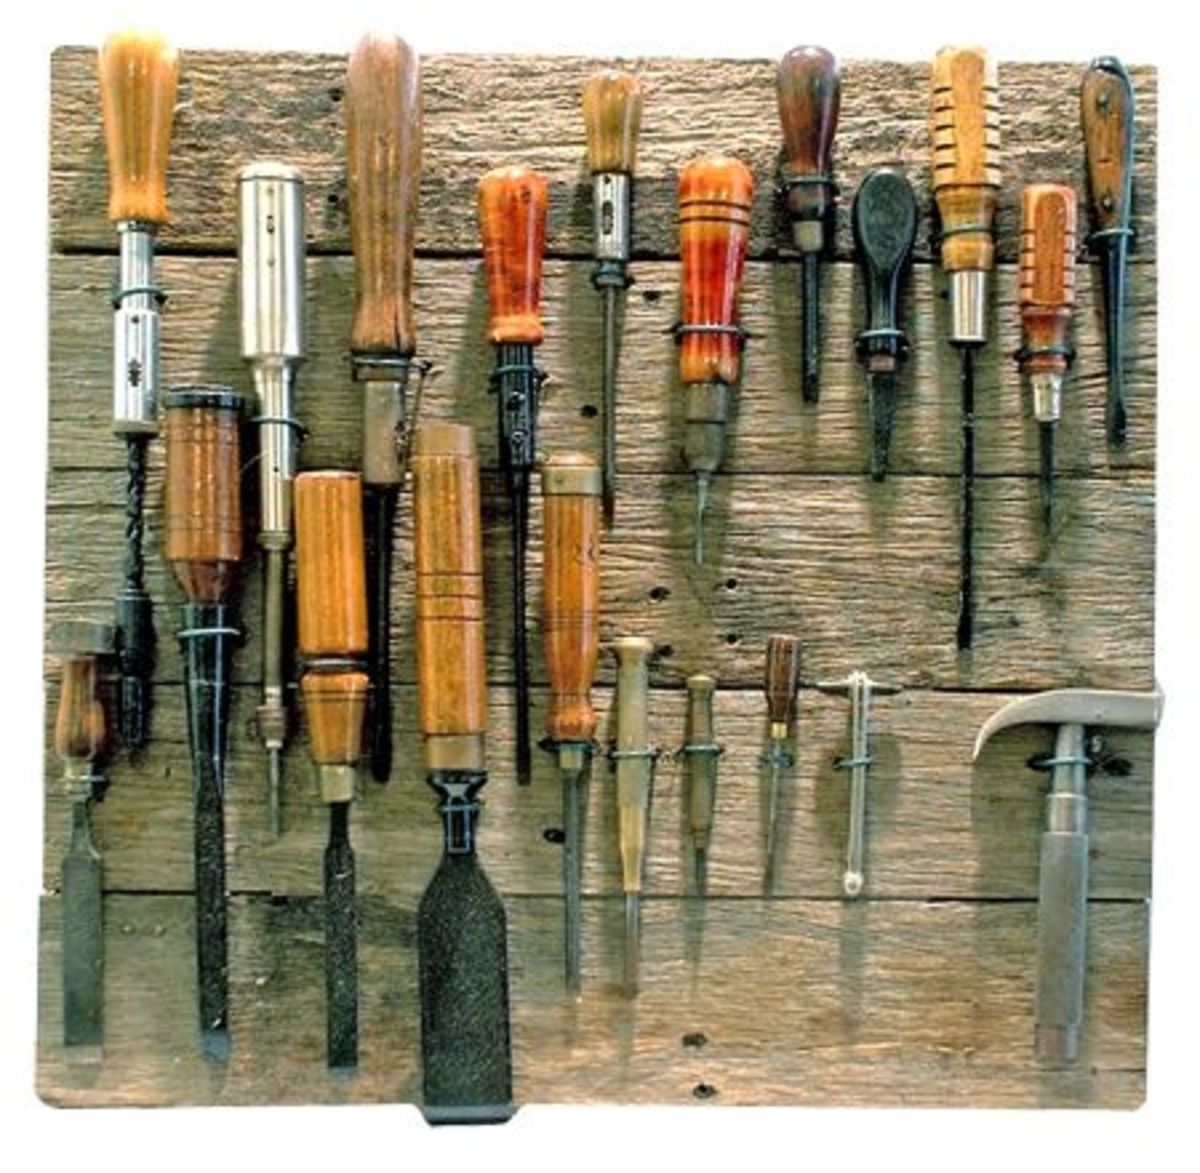 Assorted tools, including chisels